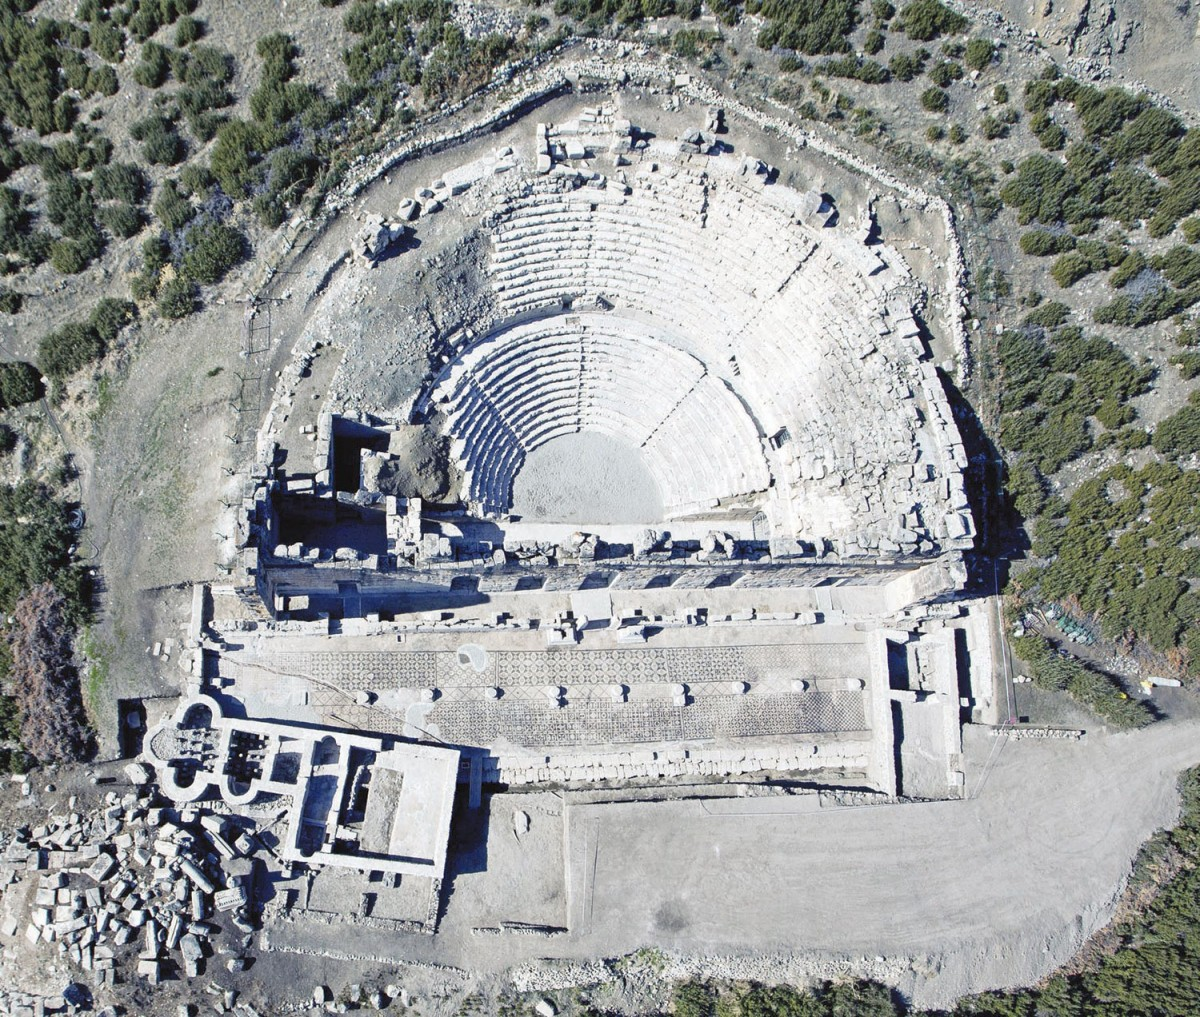 Archaeologists have uncovered a stadium in Anatolia at Aydın's ancient city of Magnesia, along with a theater, an agora and wall motifs.